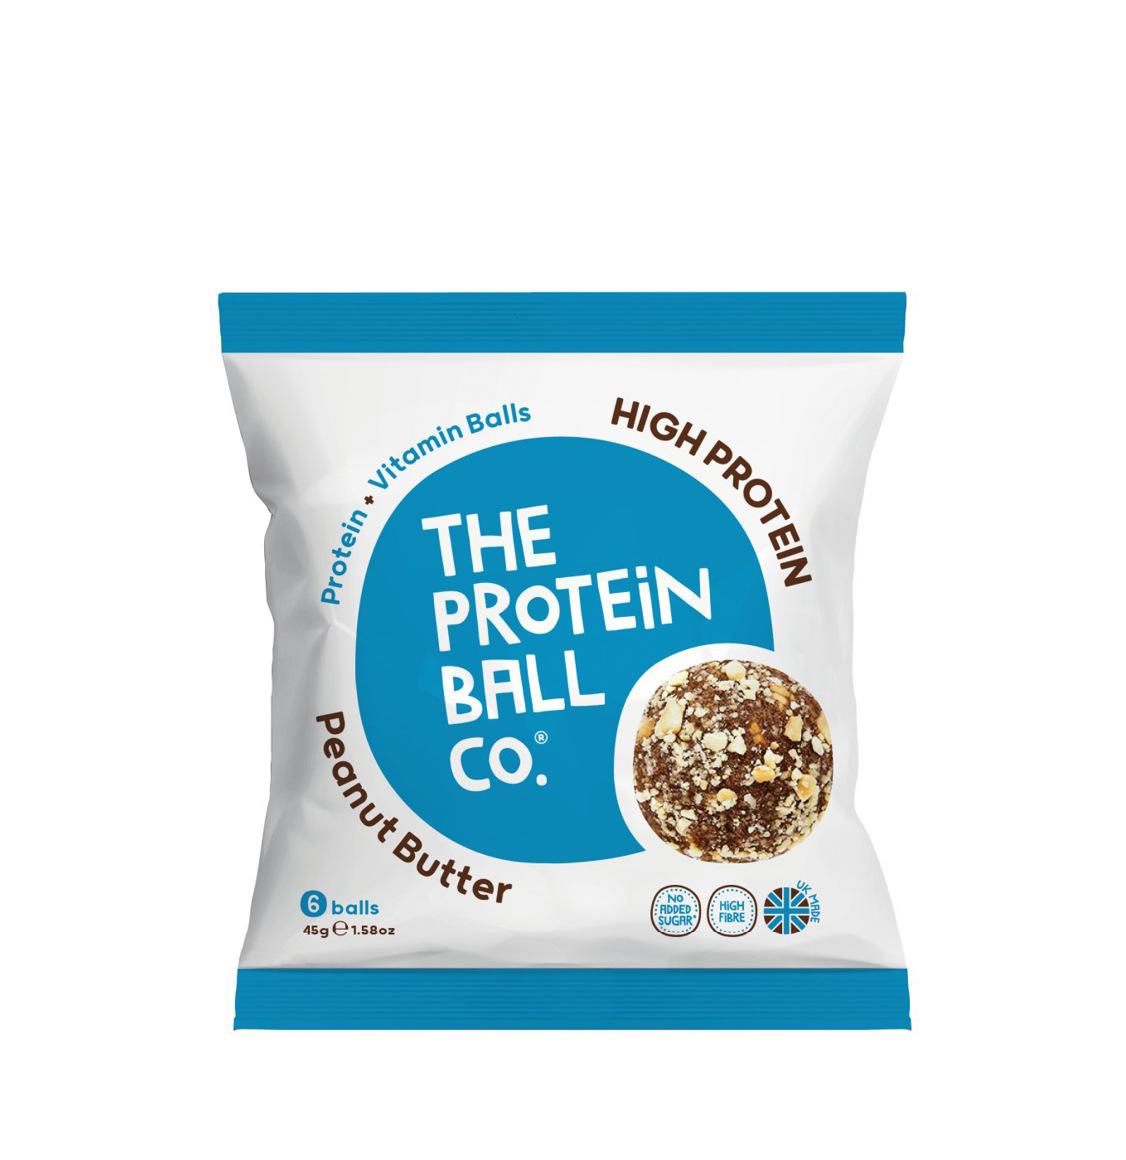 The Protein Ball Co. Peanut Butter High Protein Balls 45g